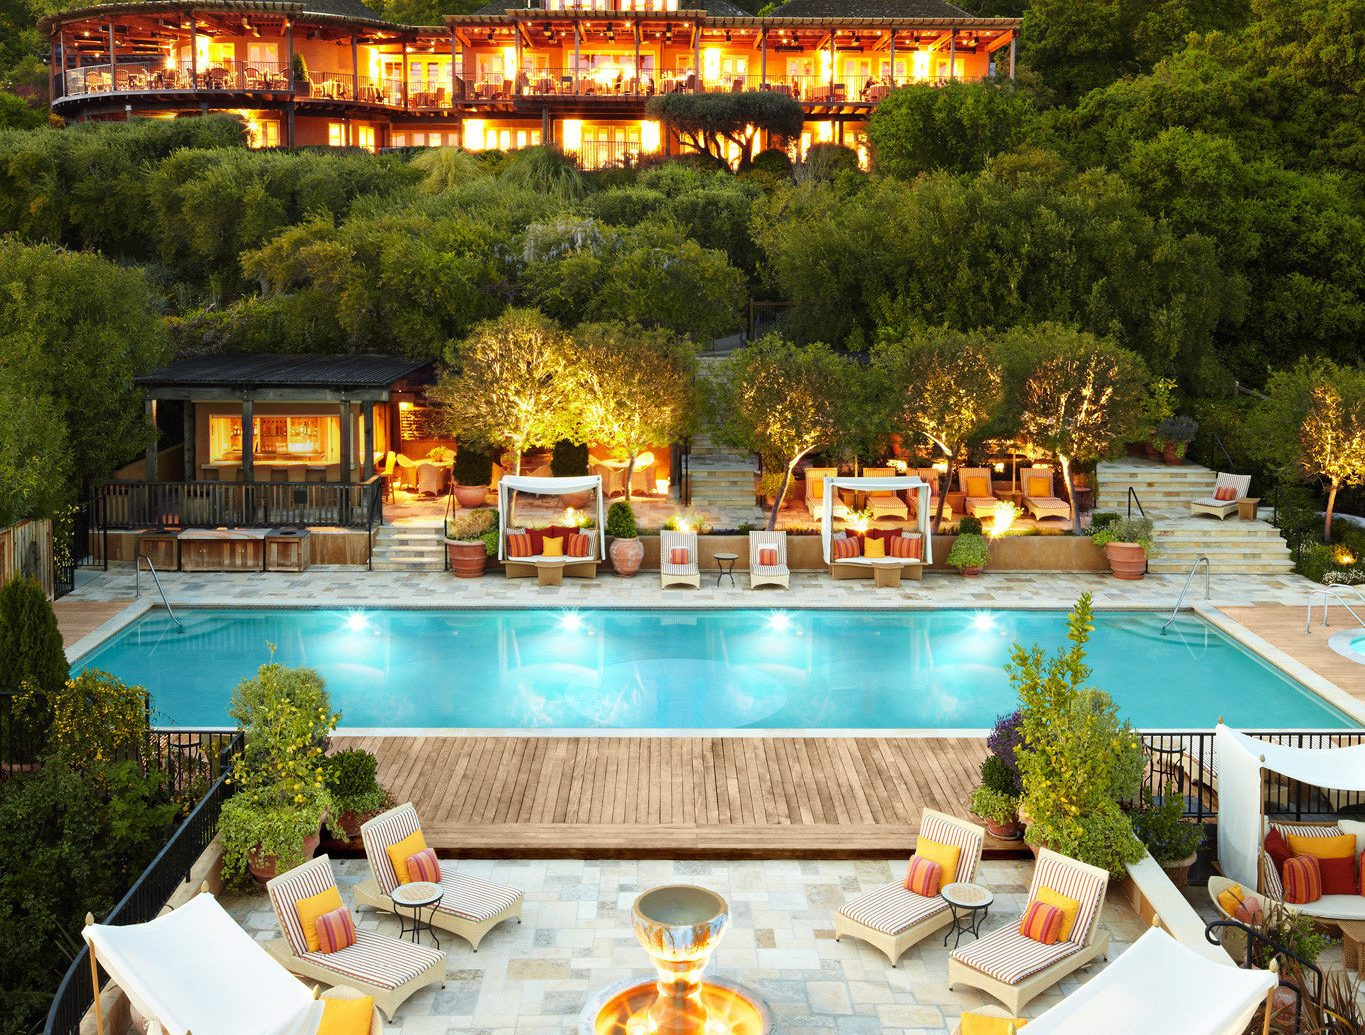 Romantic Pool Ideas The Most Romantic Hotels In The U S Hands Down Jetsetter